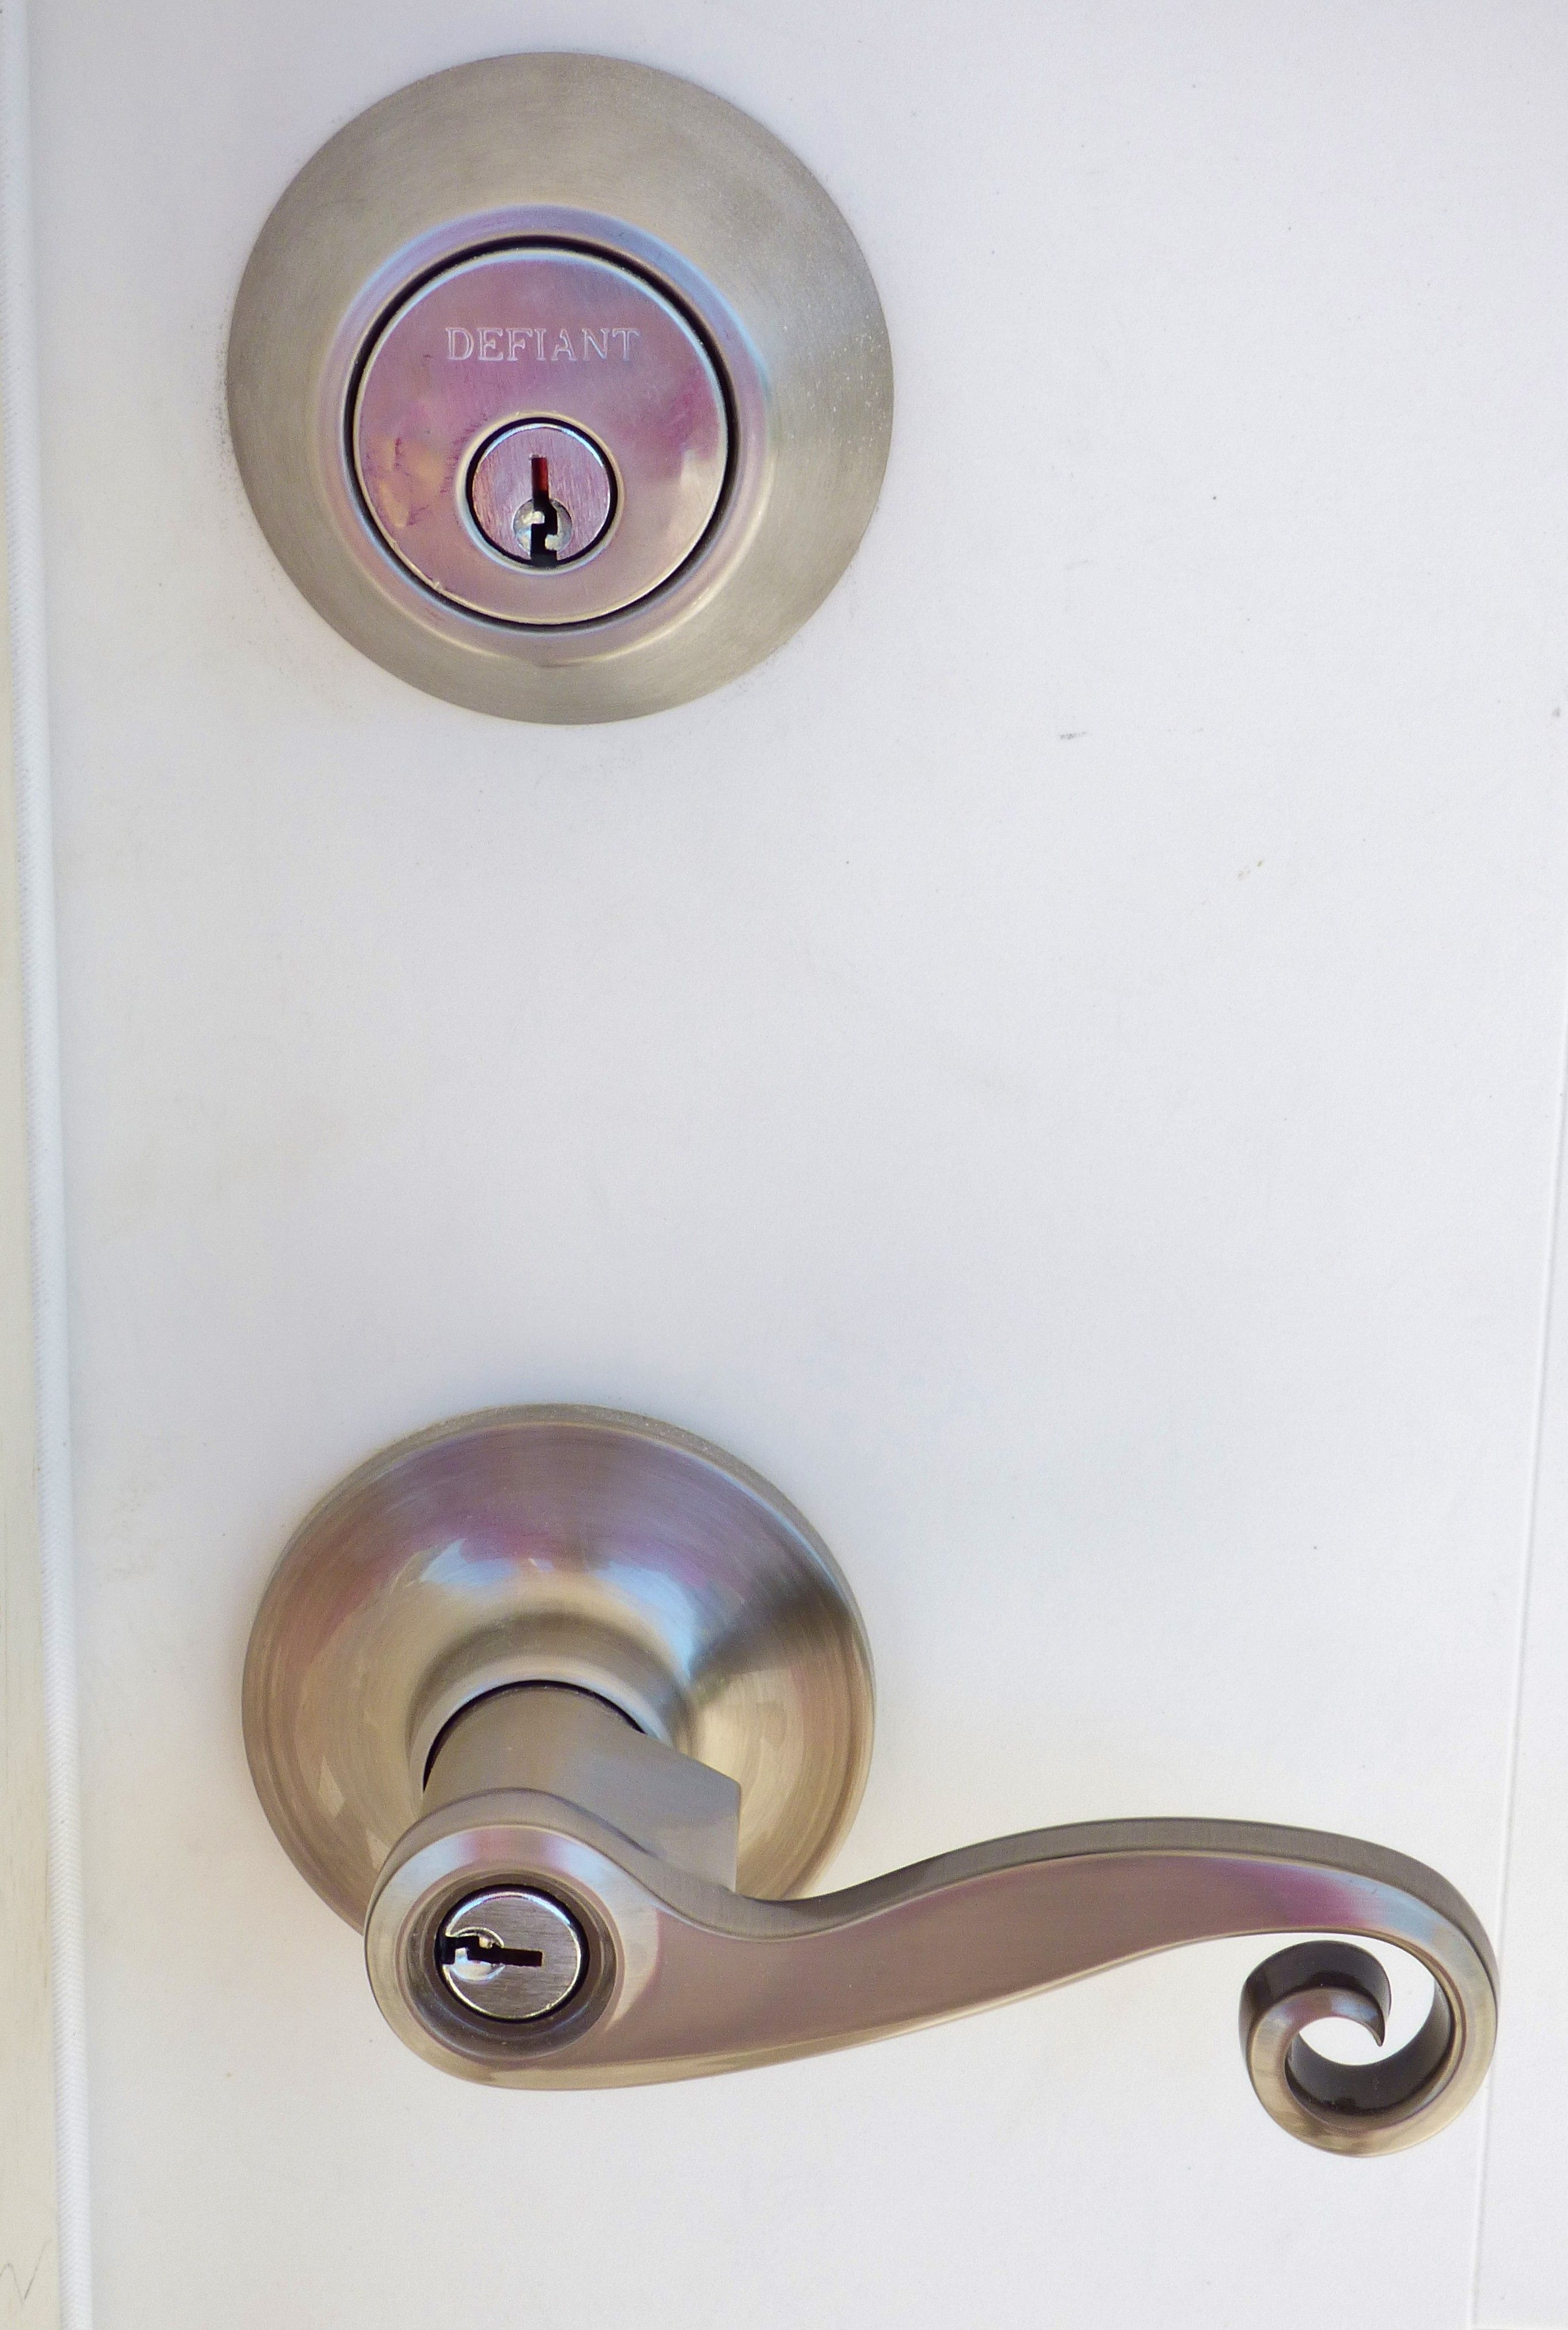 The builder uses elaborate finishing touches to homes being built. With other builders, this would be a plain doorknob. www.milsteadconstructionhomes.com